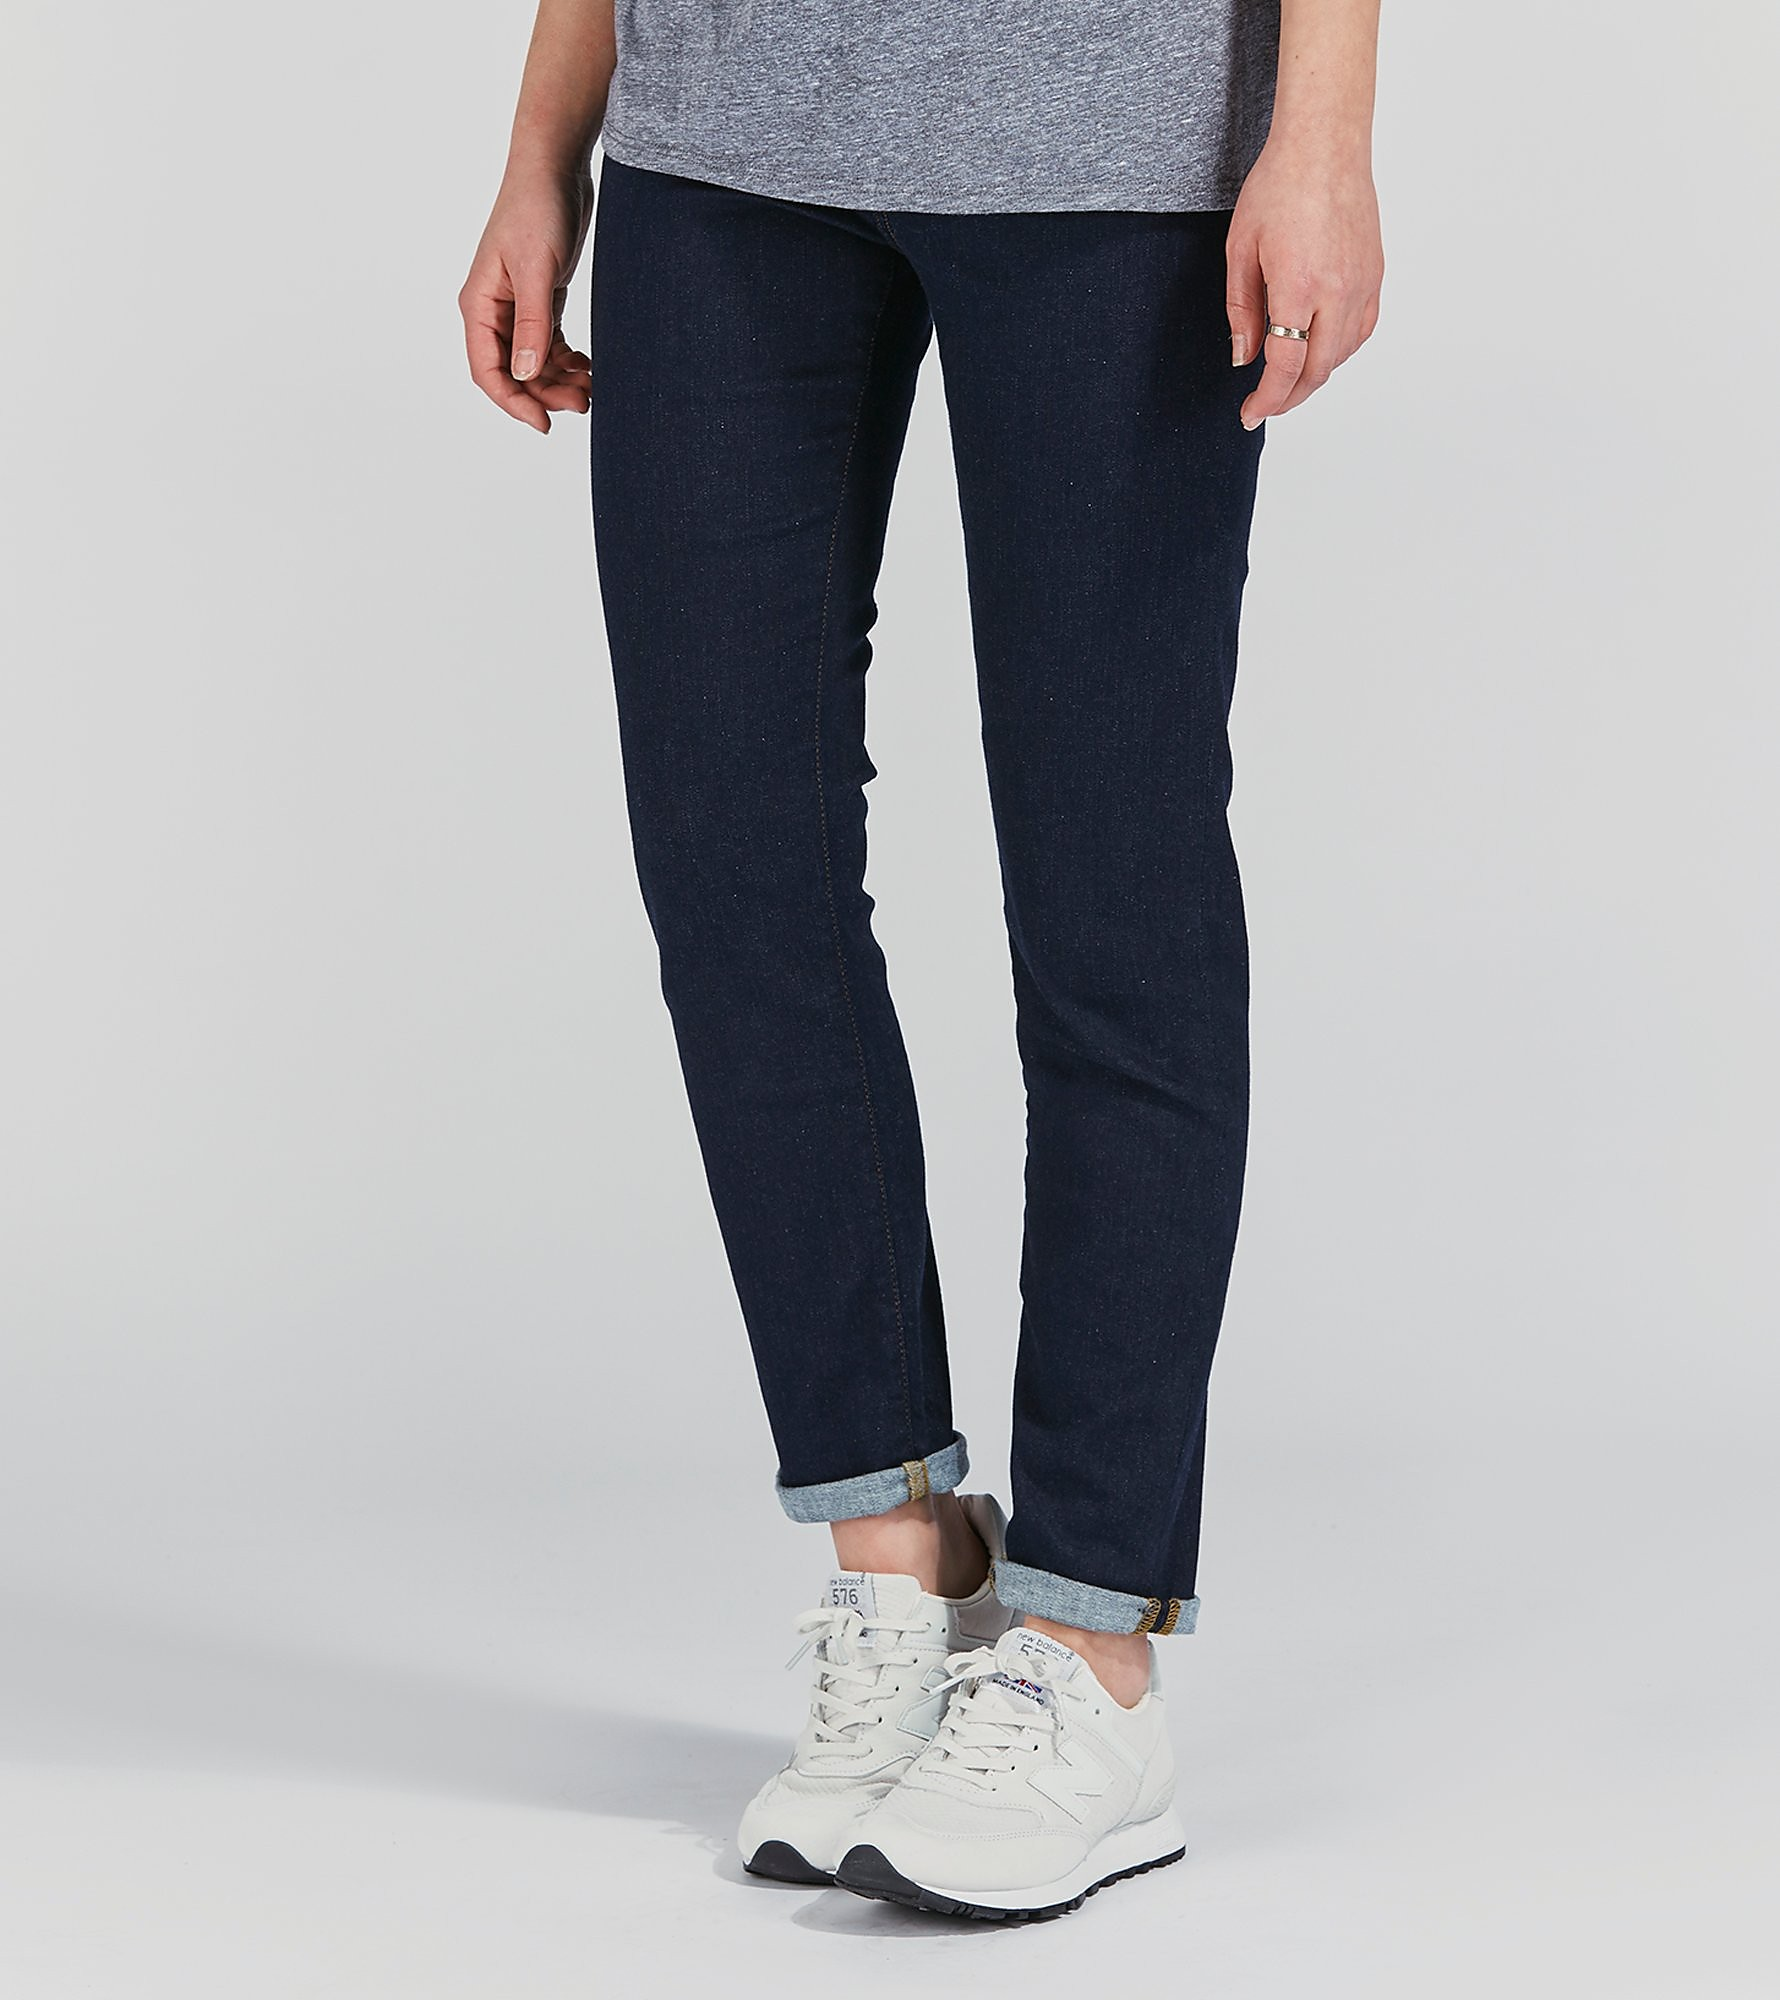 Carhartt WIP Ashley Ankle Denim Jeans